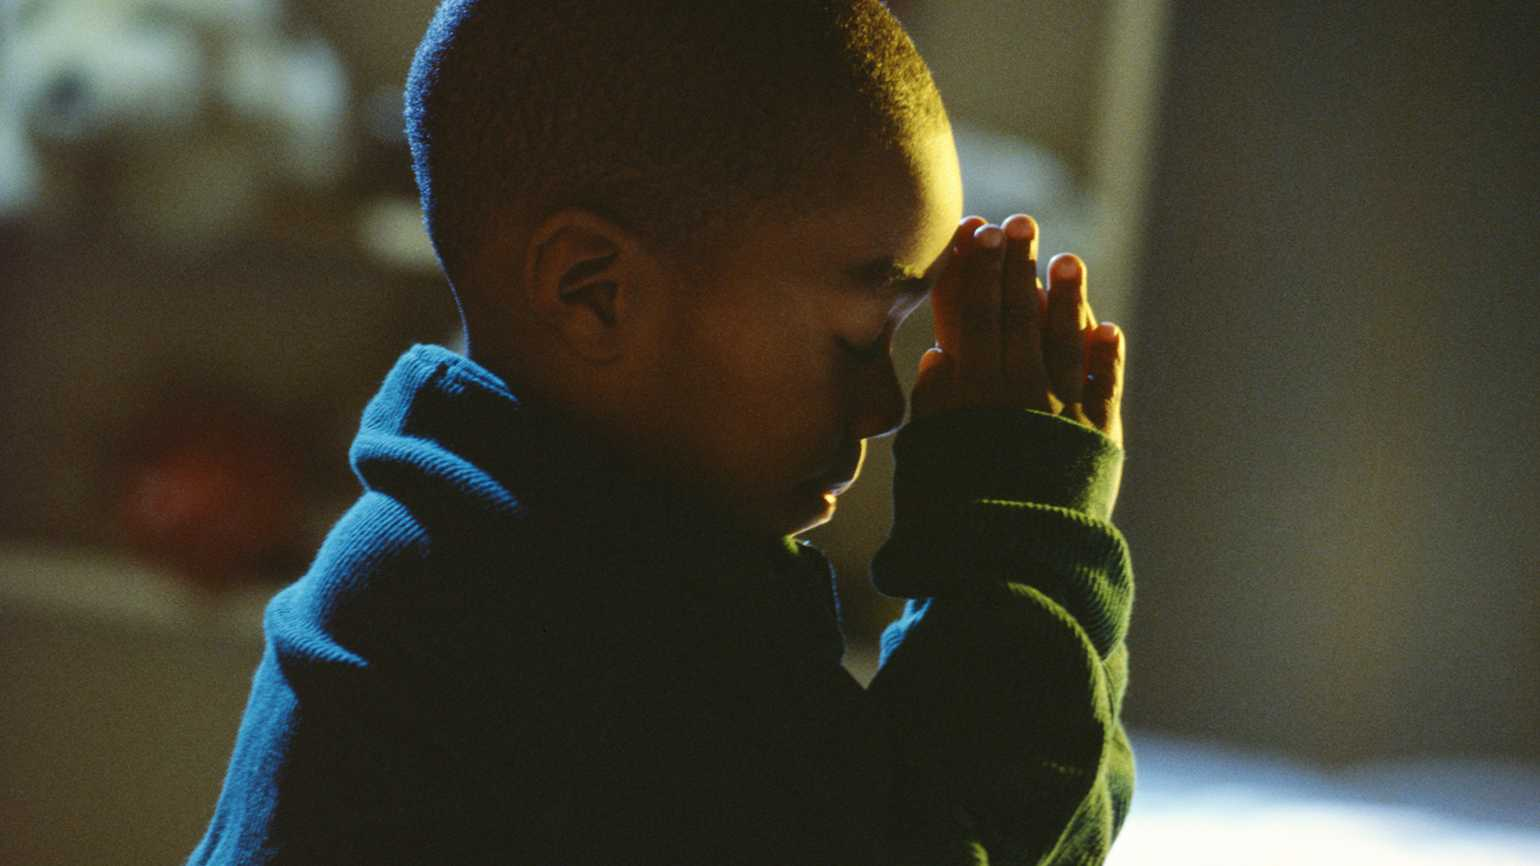 A young child's bedside prayer